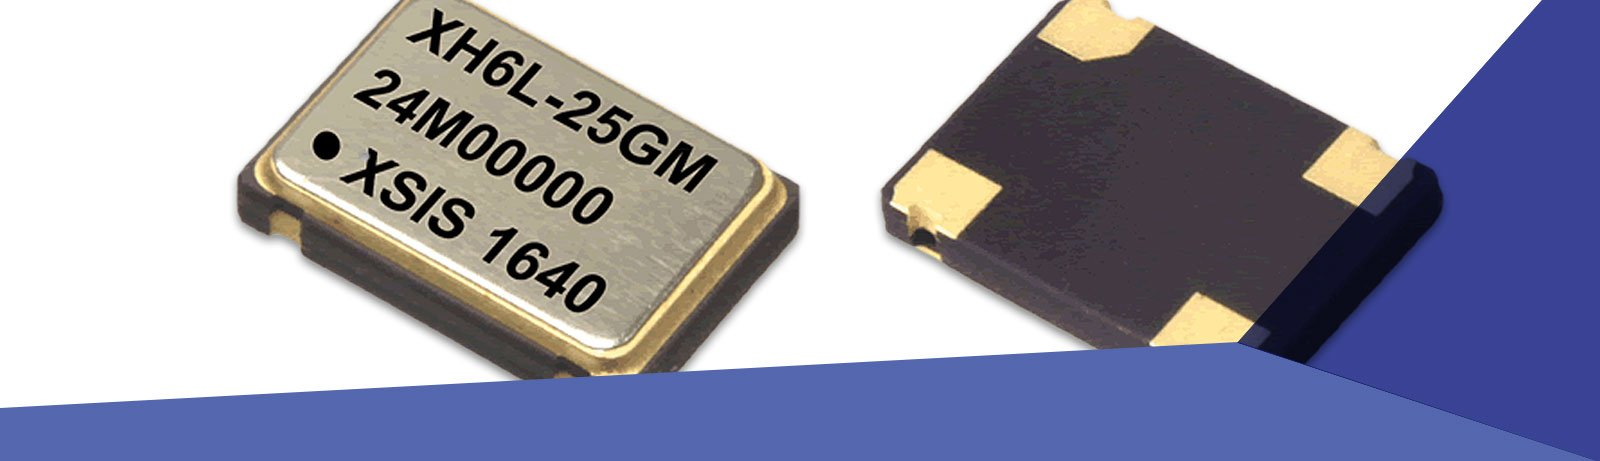 Hi-Rel Crystal Oscillators For Extremely High-Temp. Applications